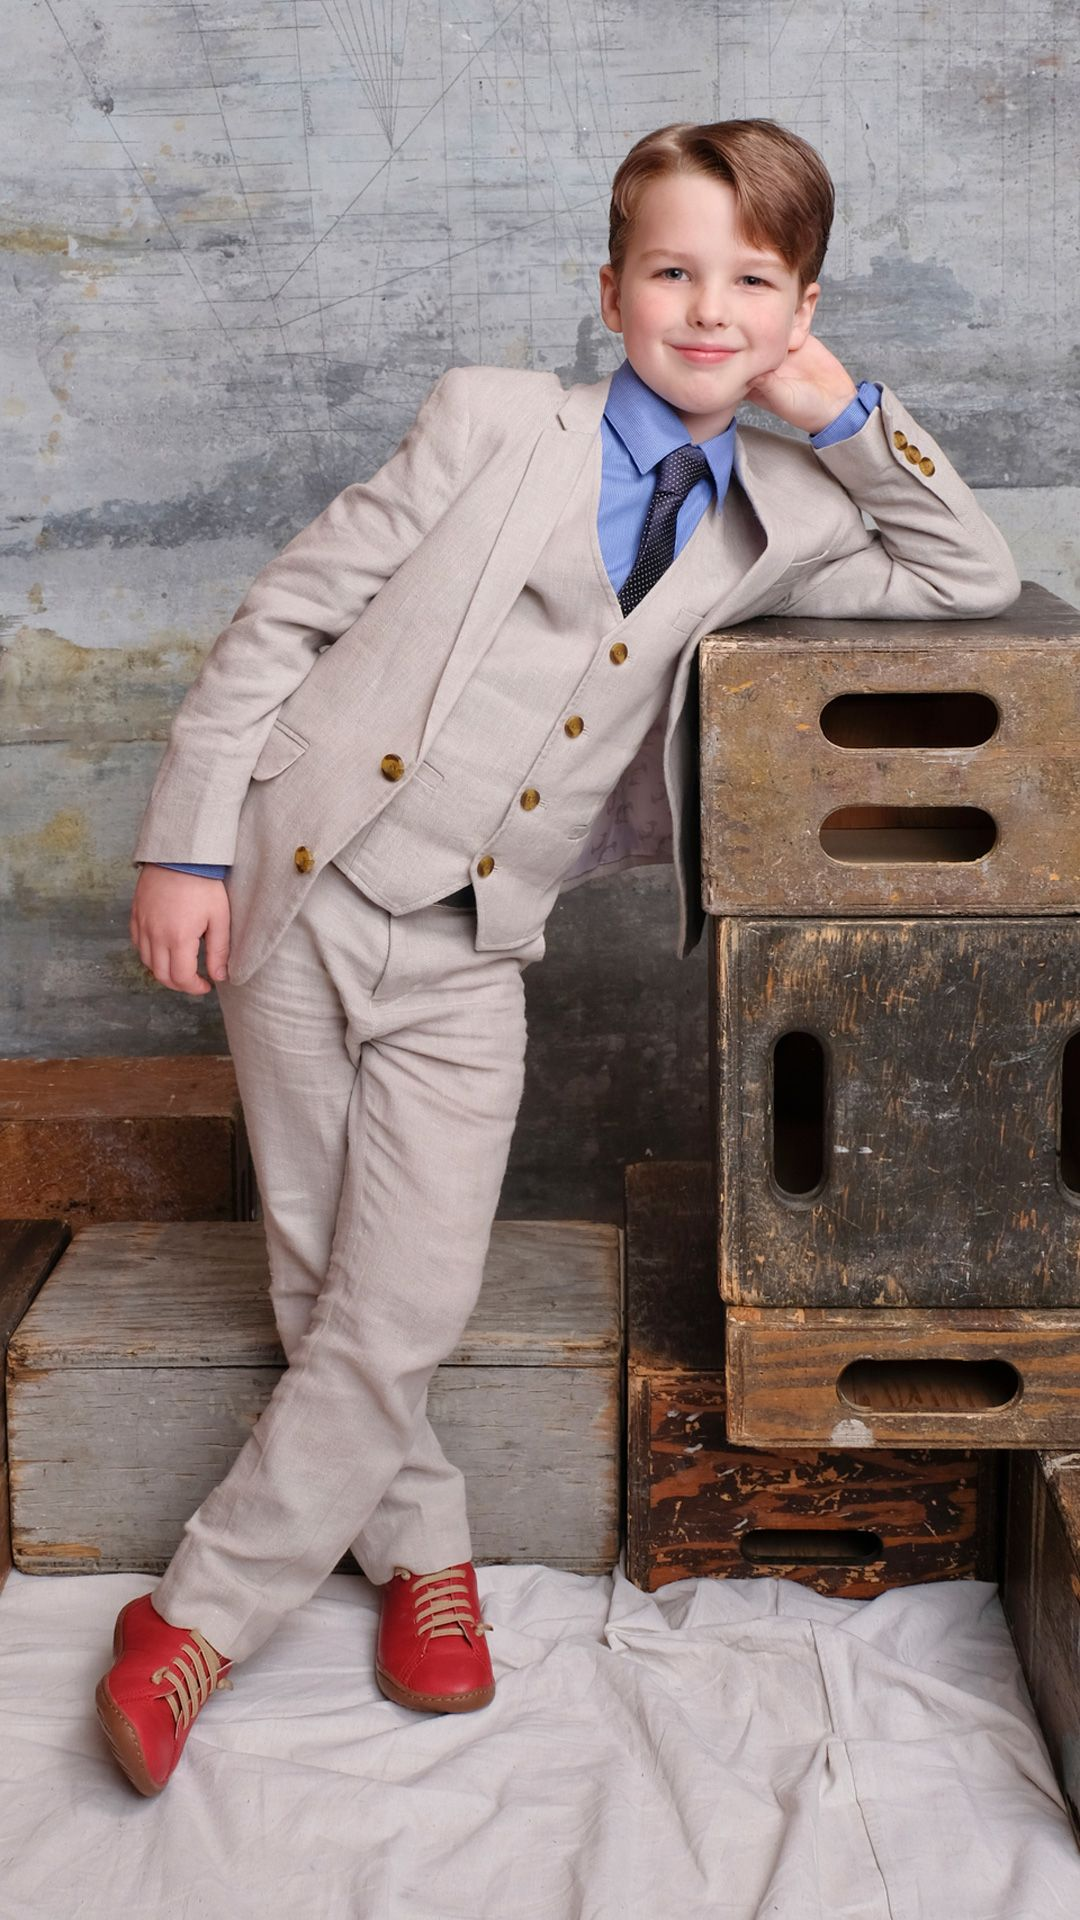 Iain Armitage has been capturing viewers' hearts since 'Young Sheldon' premiered in 2017. Photo: CBS